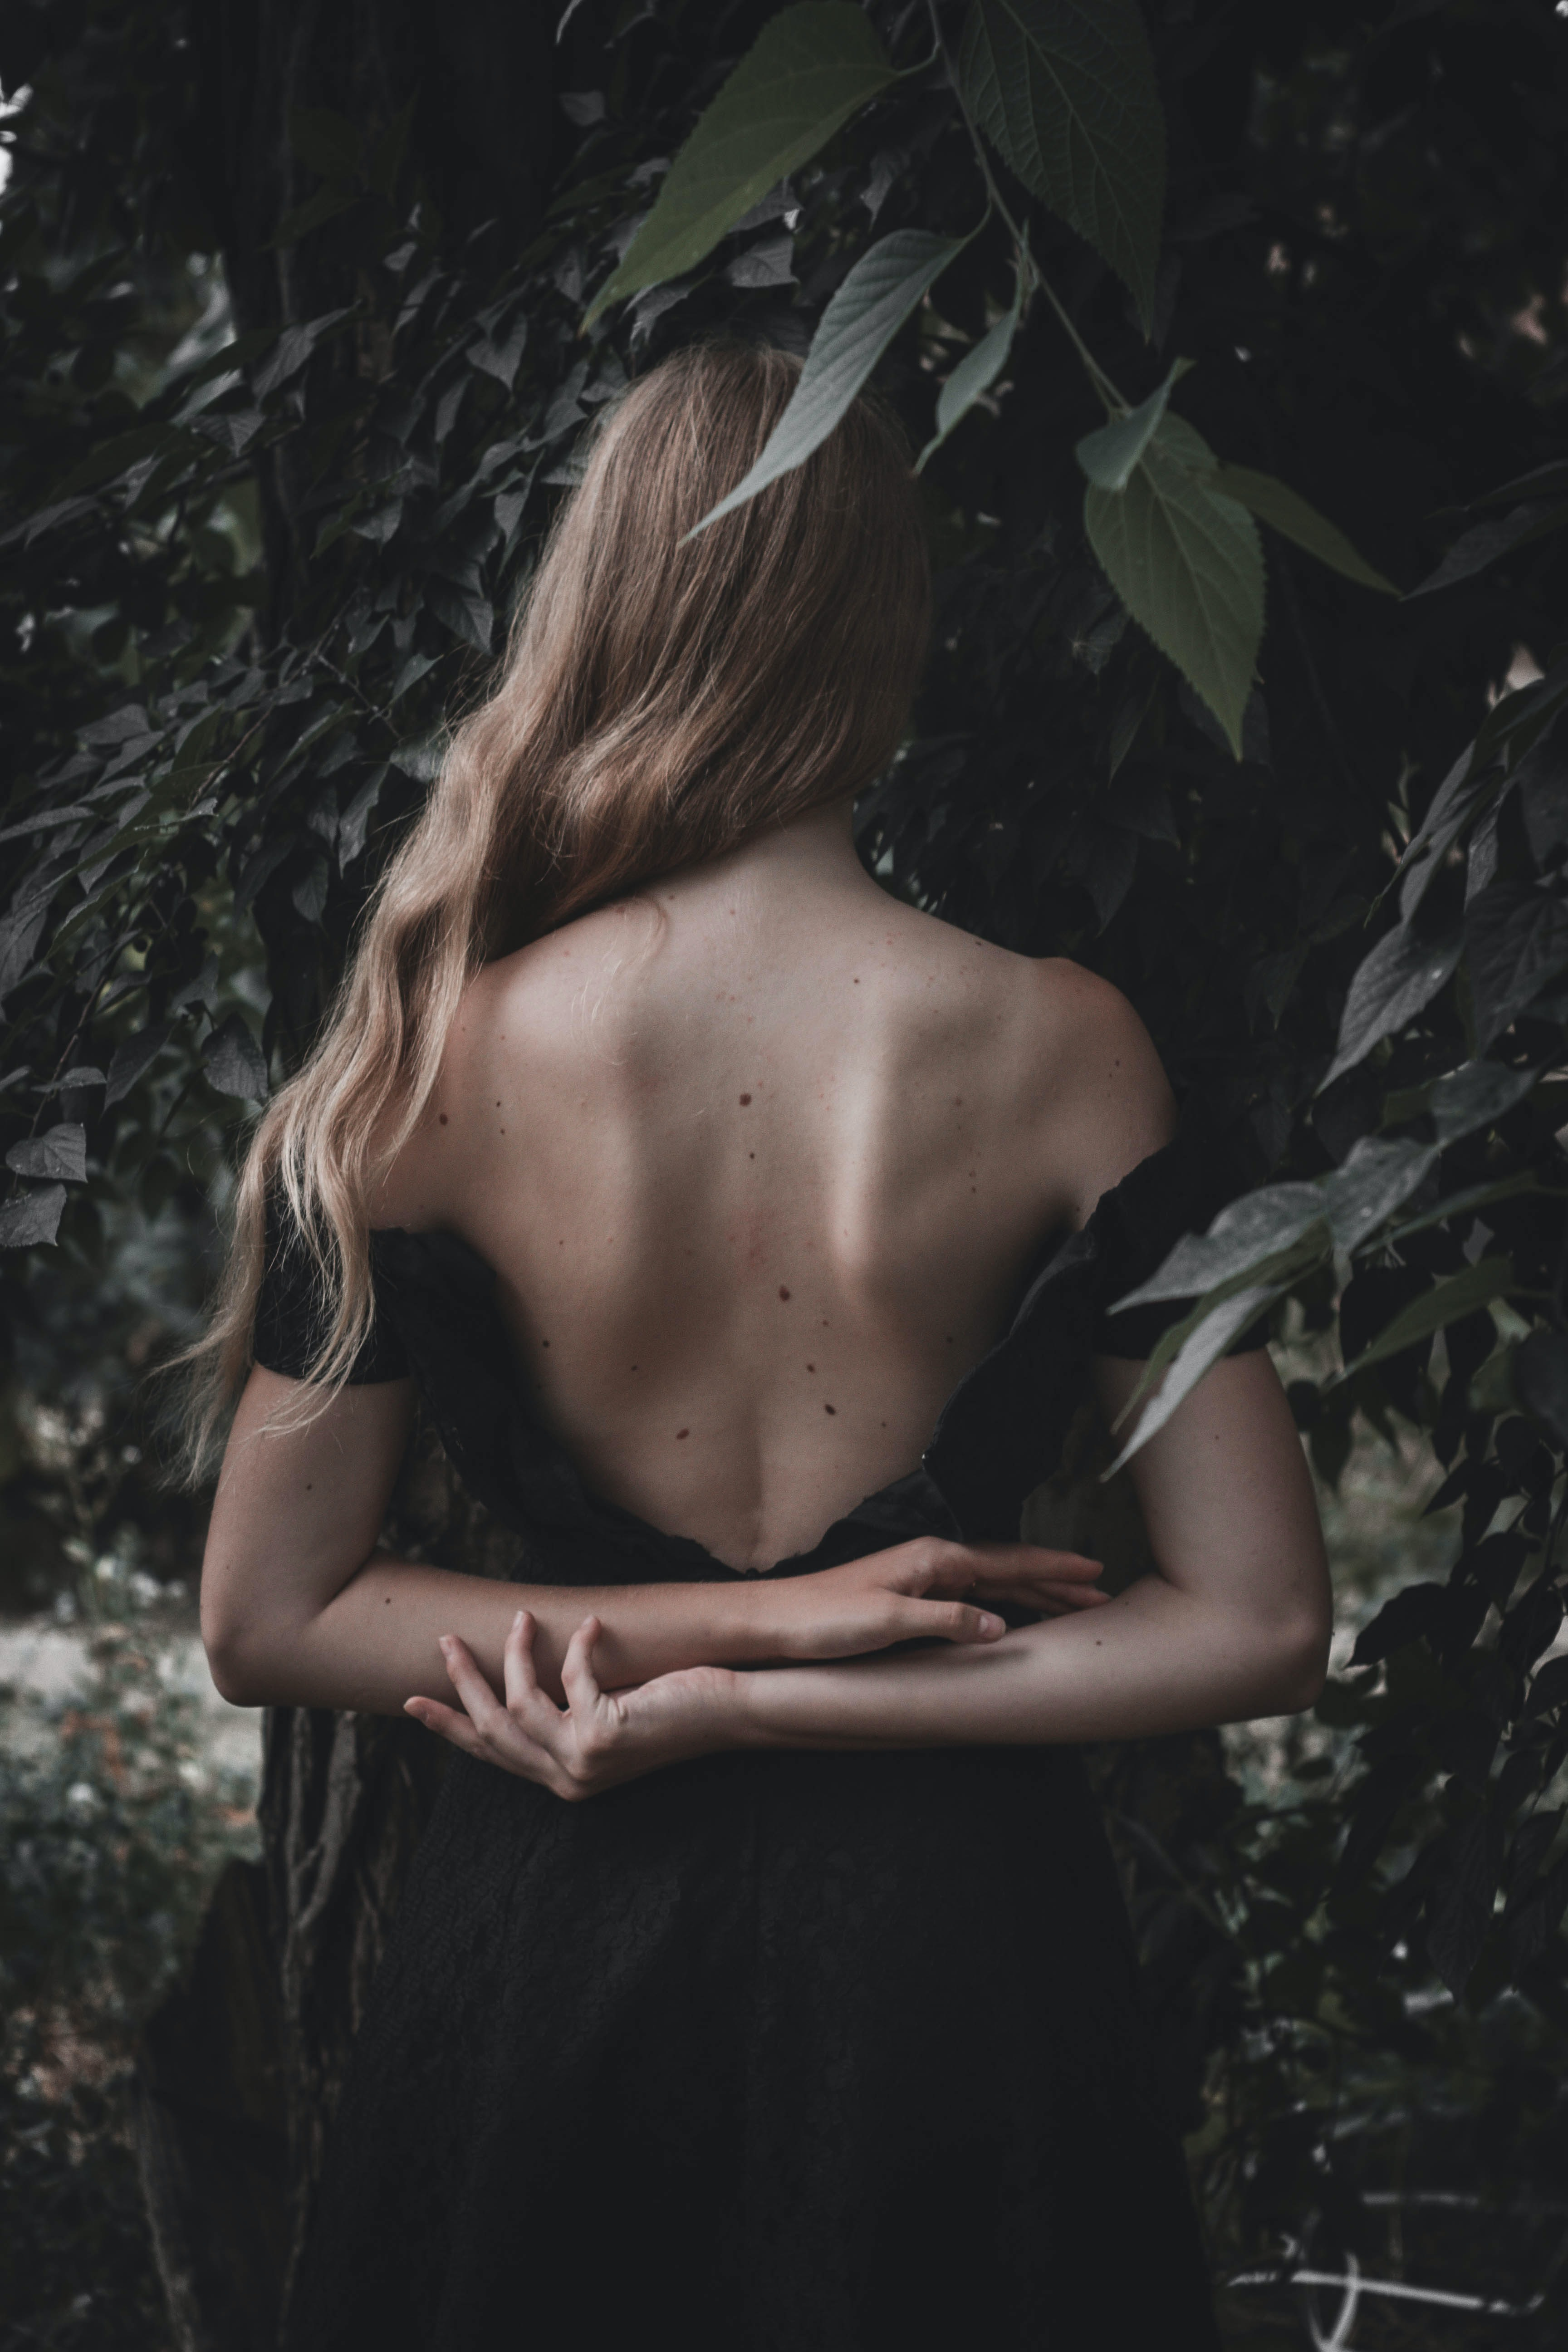 woman wearing backless dress near leaves